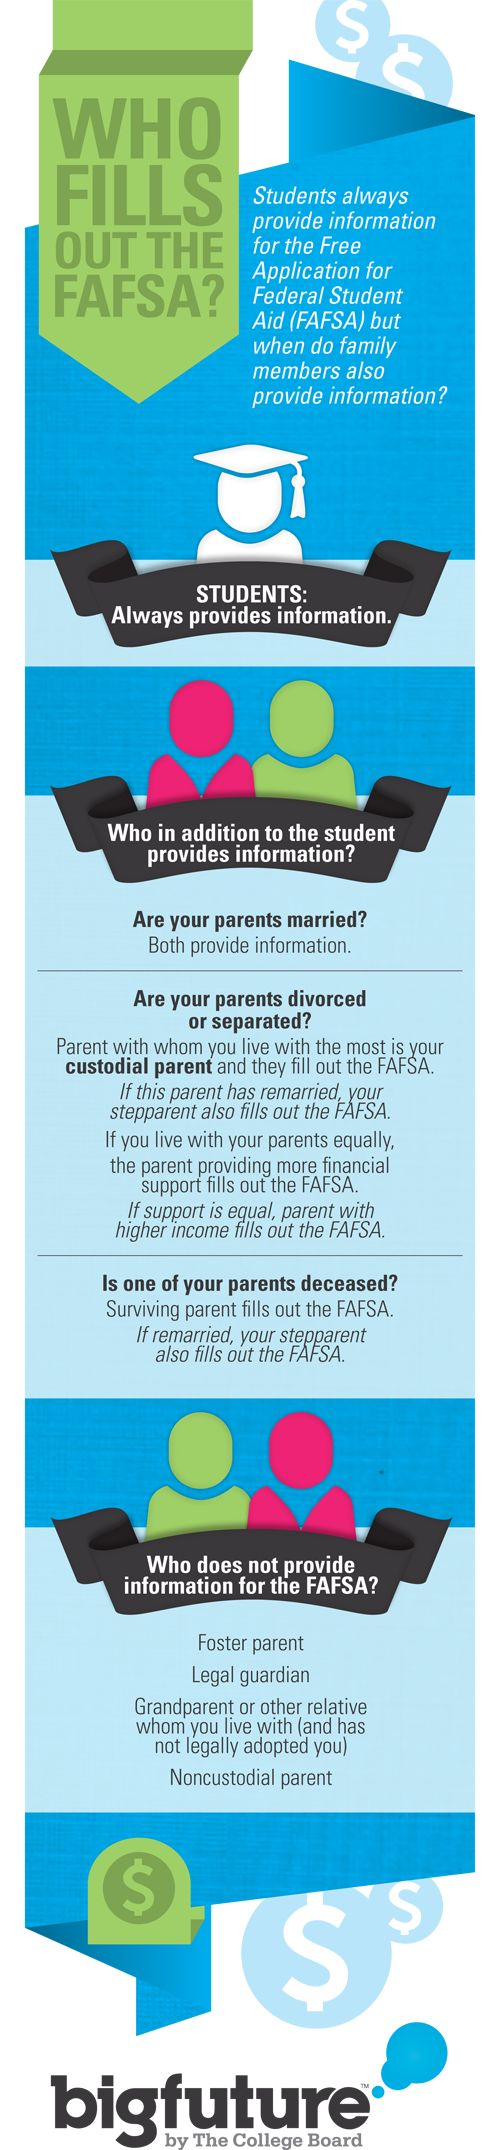 Do you have questions about who fills out the FAFSA? This infographic should help: